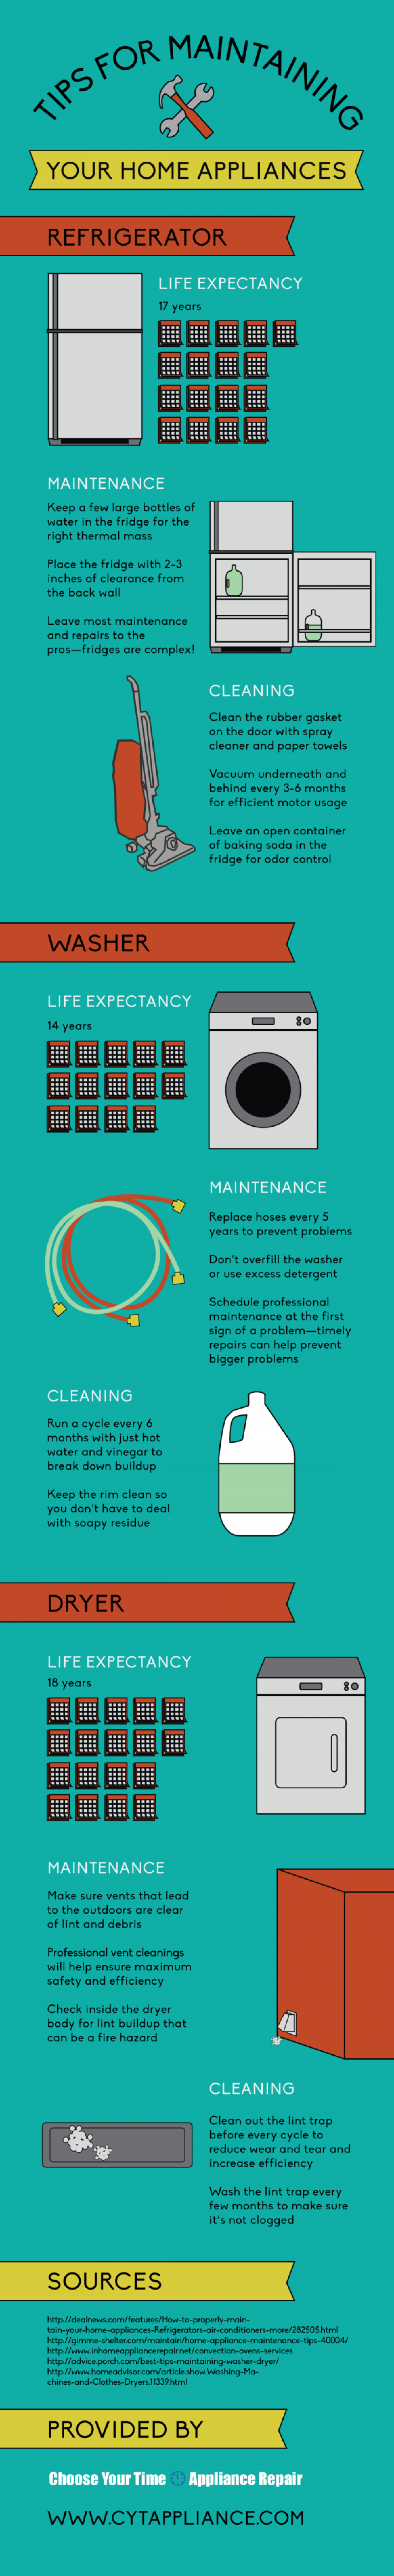 Tips for Maintaining Your Home Appliances Infographic